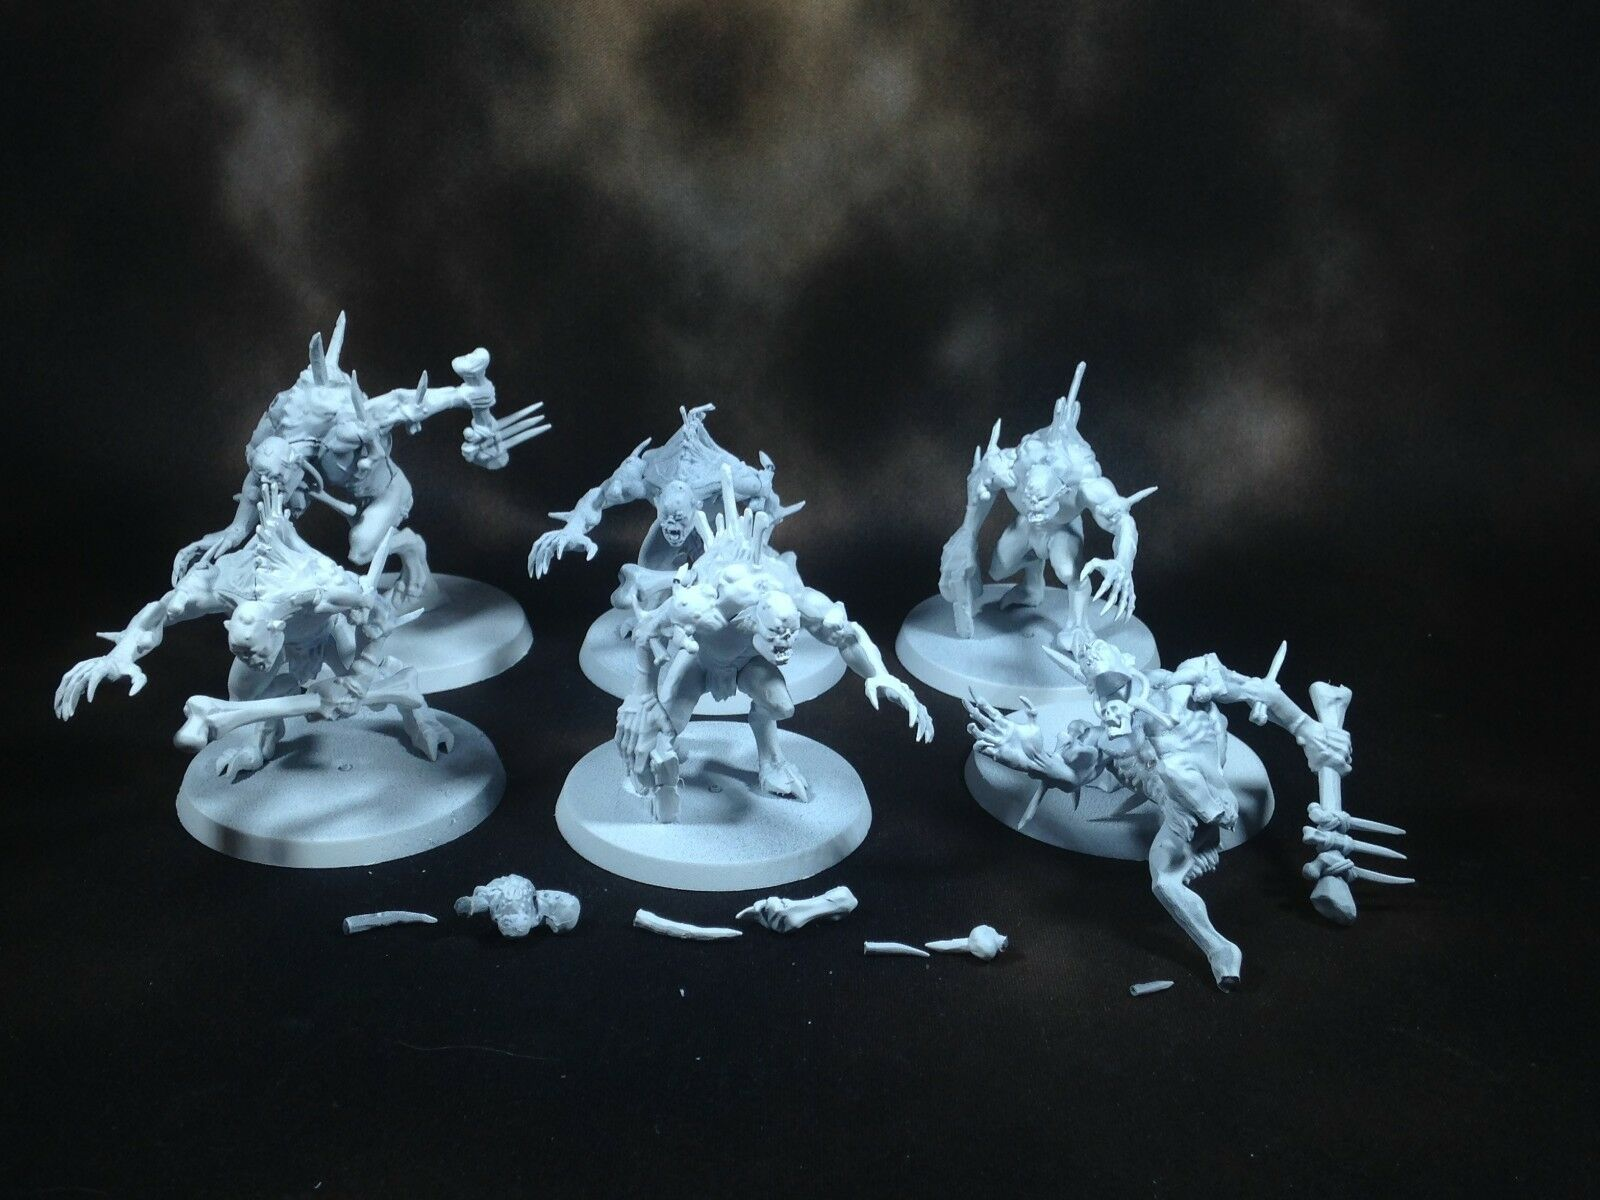 Warhammer Fantasy AOS Death Vampire Counts Crypt Horrors